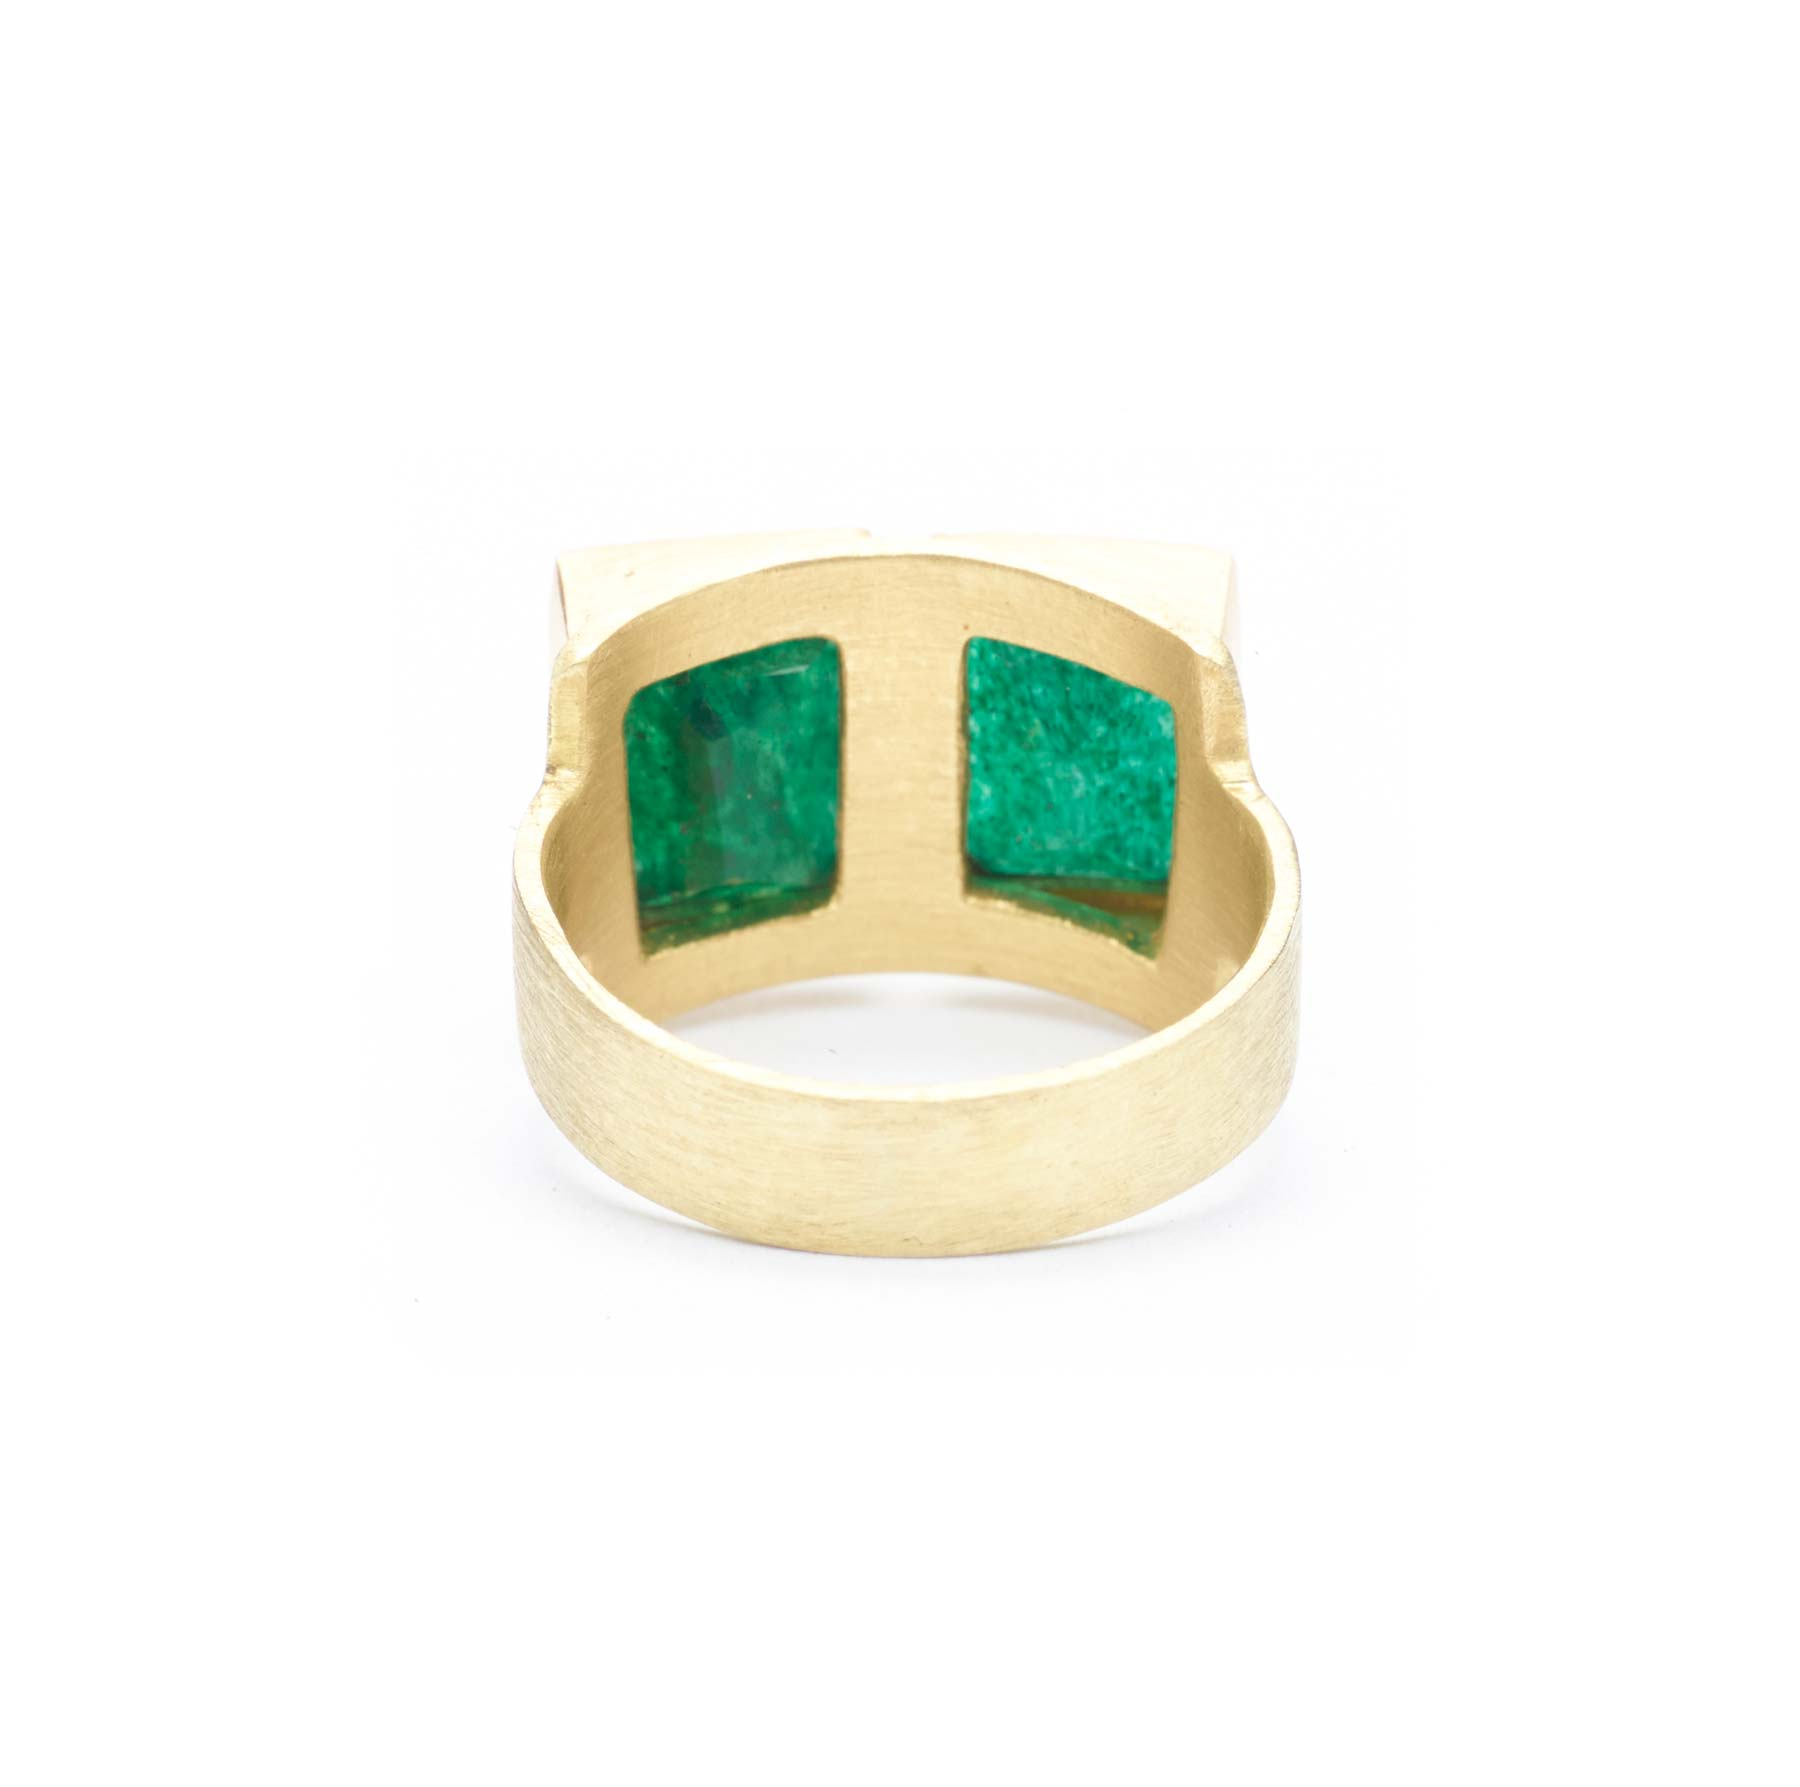 Emerald-and-18k-gold-ring-custom-made-jewelry-handcrafted-in-austin-tx.jpg